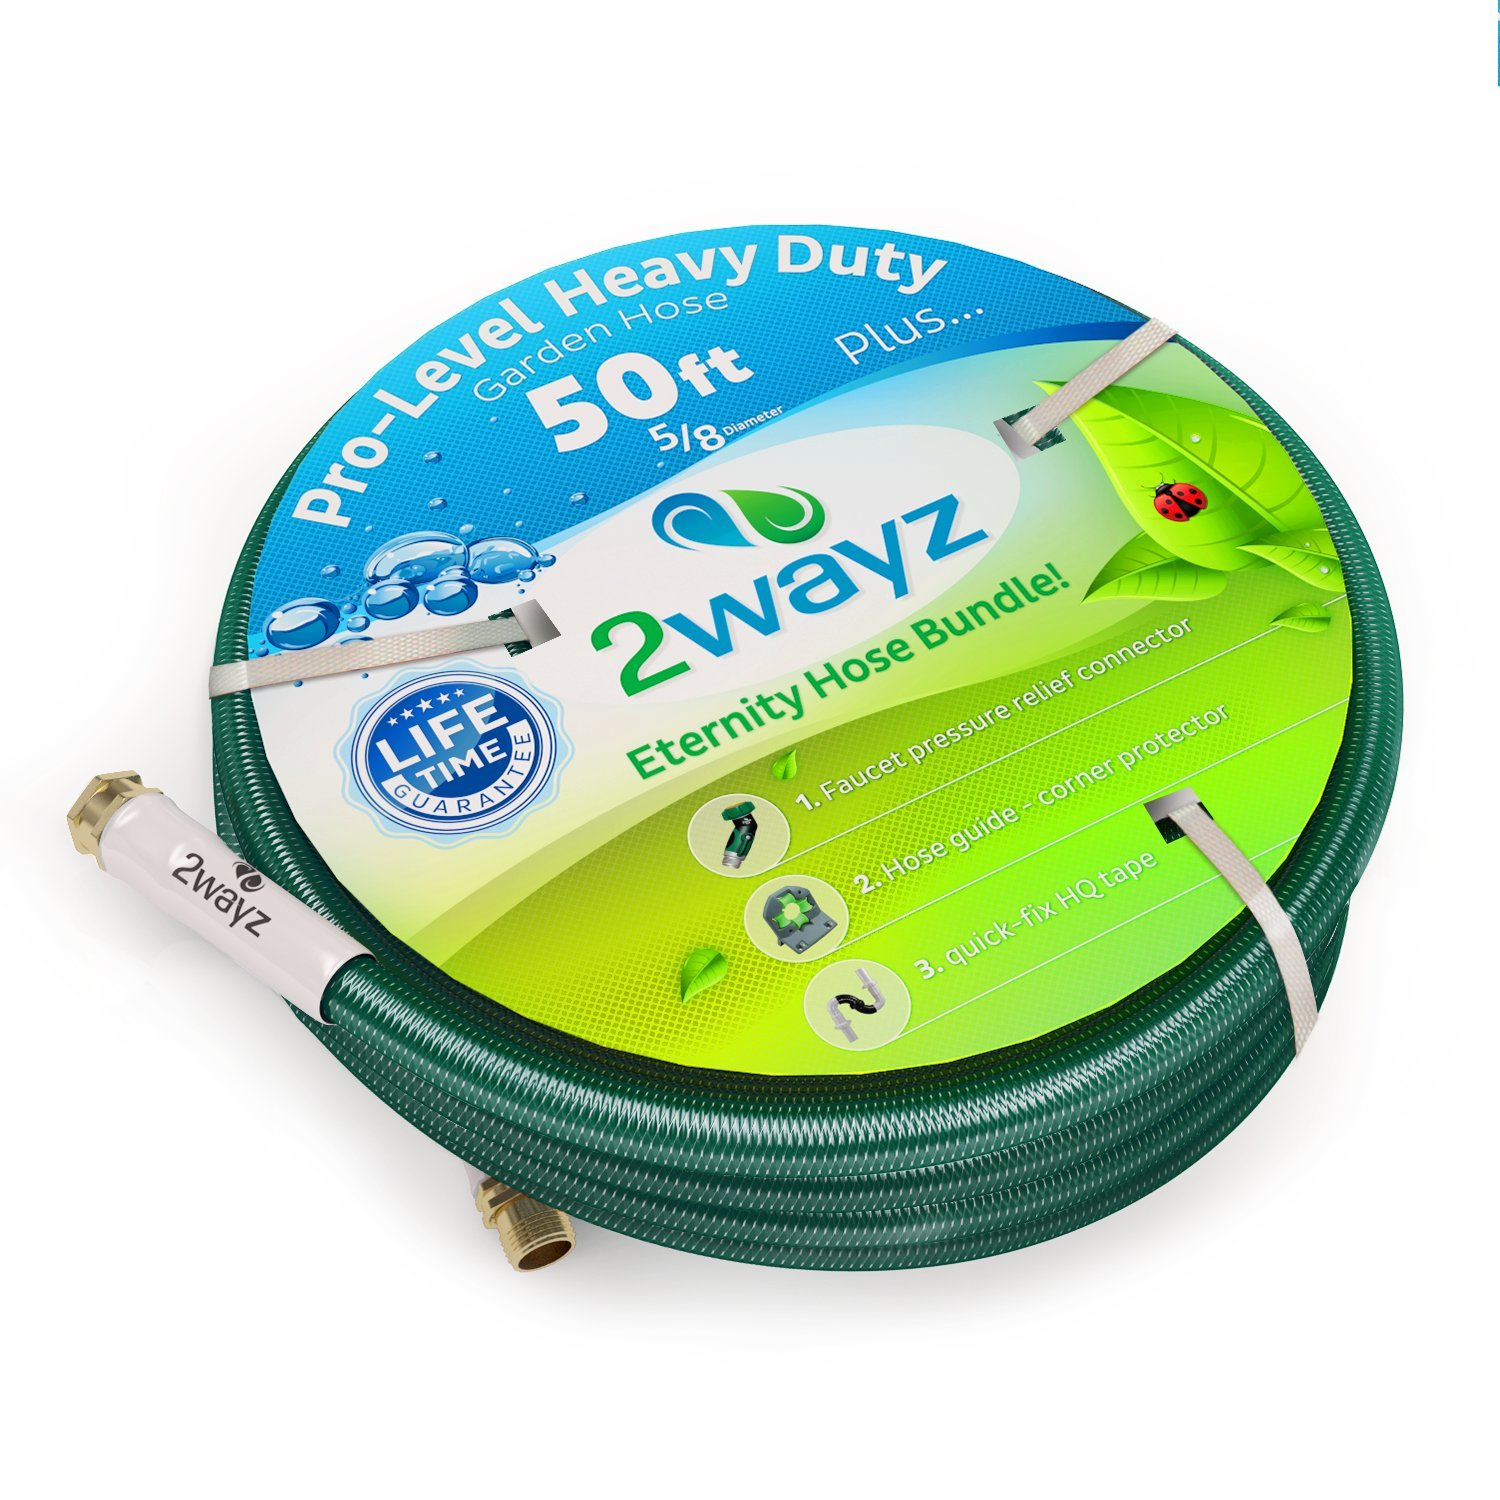 Amazon.com : 2wayz Garden Hose Bundle With 50 Feet Kink Free 5/8 Inch Water  Hose, 45 Degrees 3/4 Inch Connector, 5 Feet By 1 Inch Rescue Tape And 2  Wall And ...